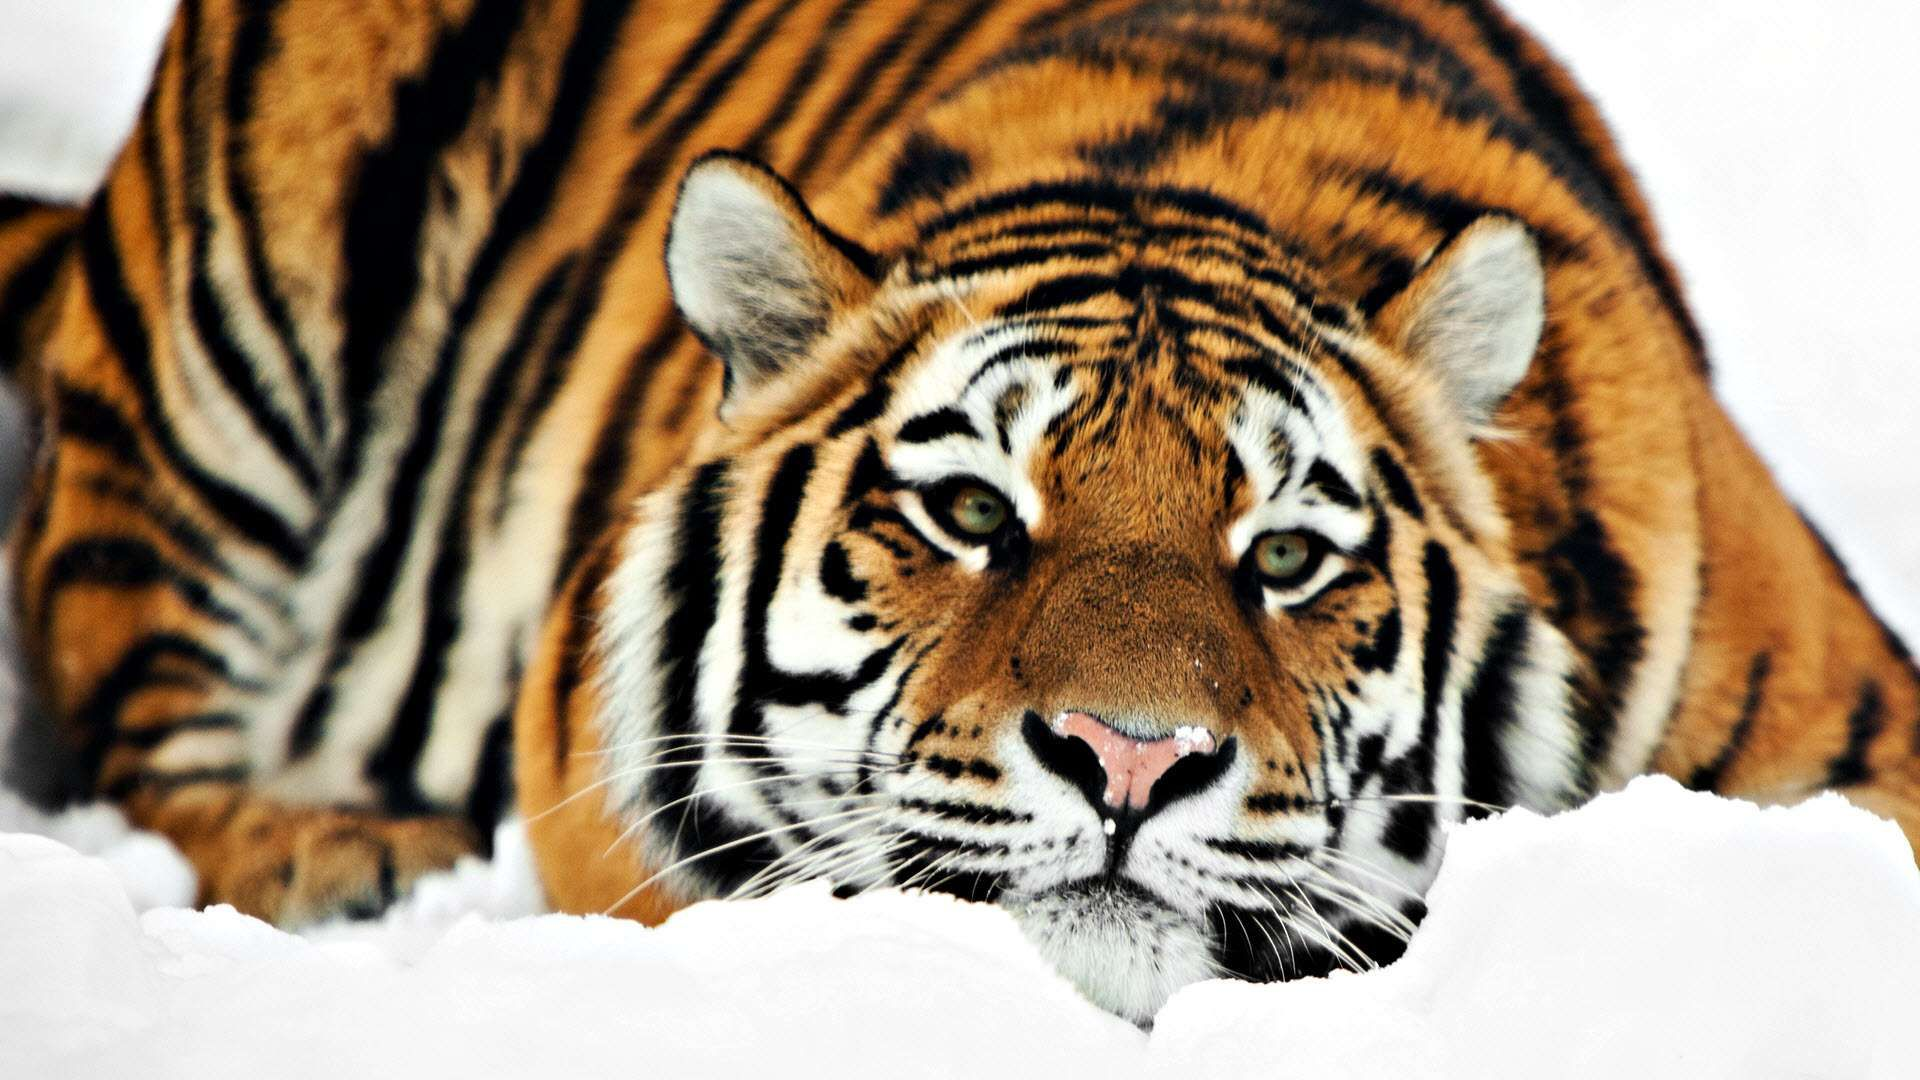 Click here to download in HD Format >> Tiger Hd 1080p